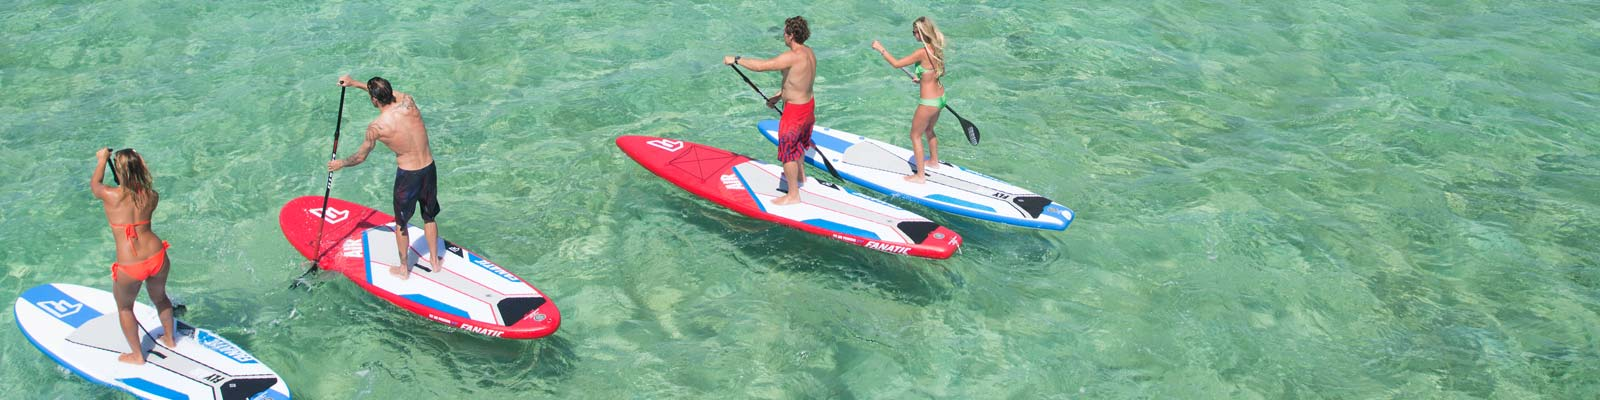 Paddleboard Lessons on St. John, USVI